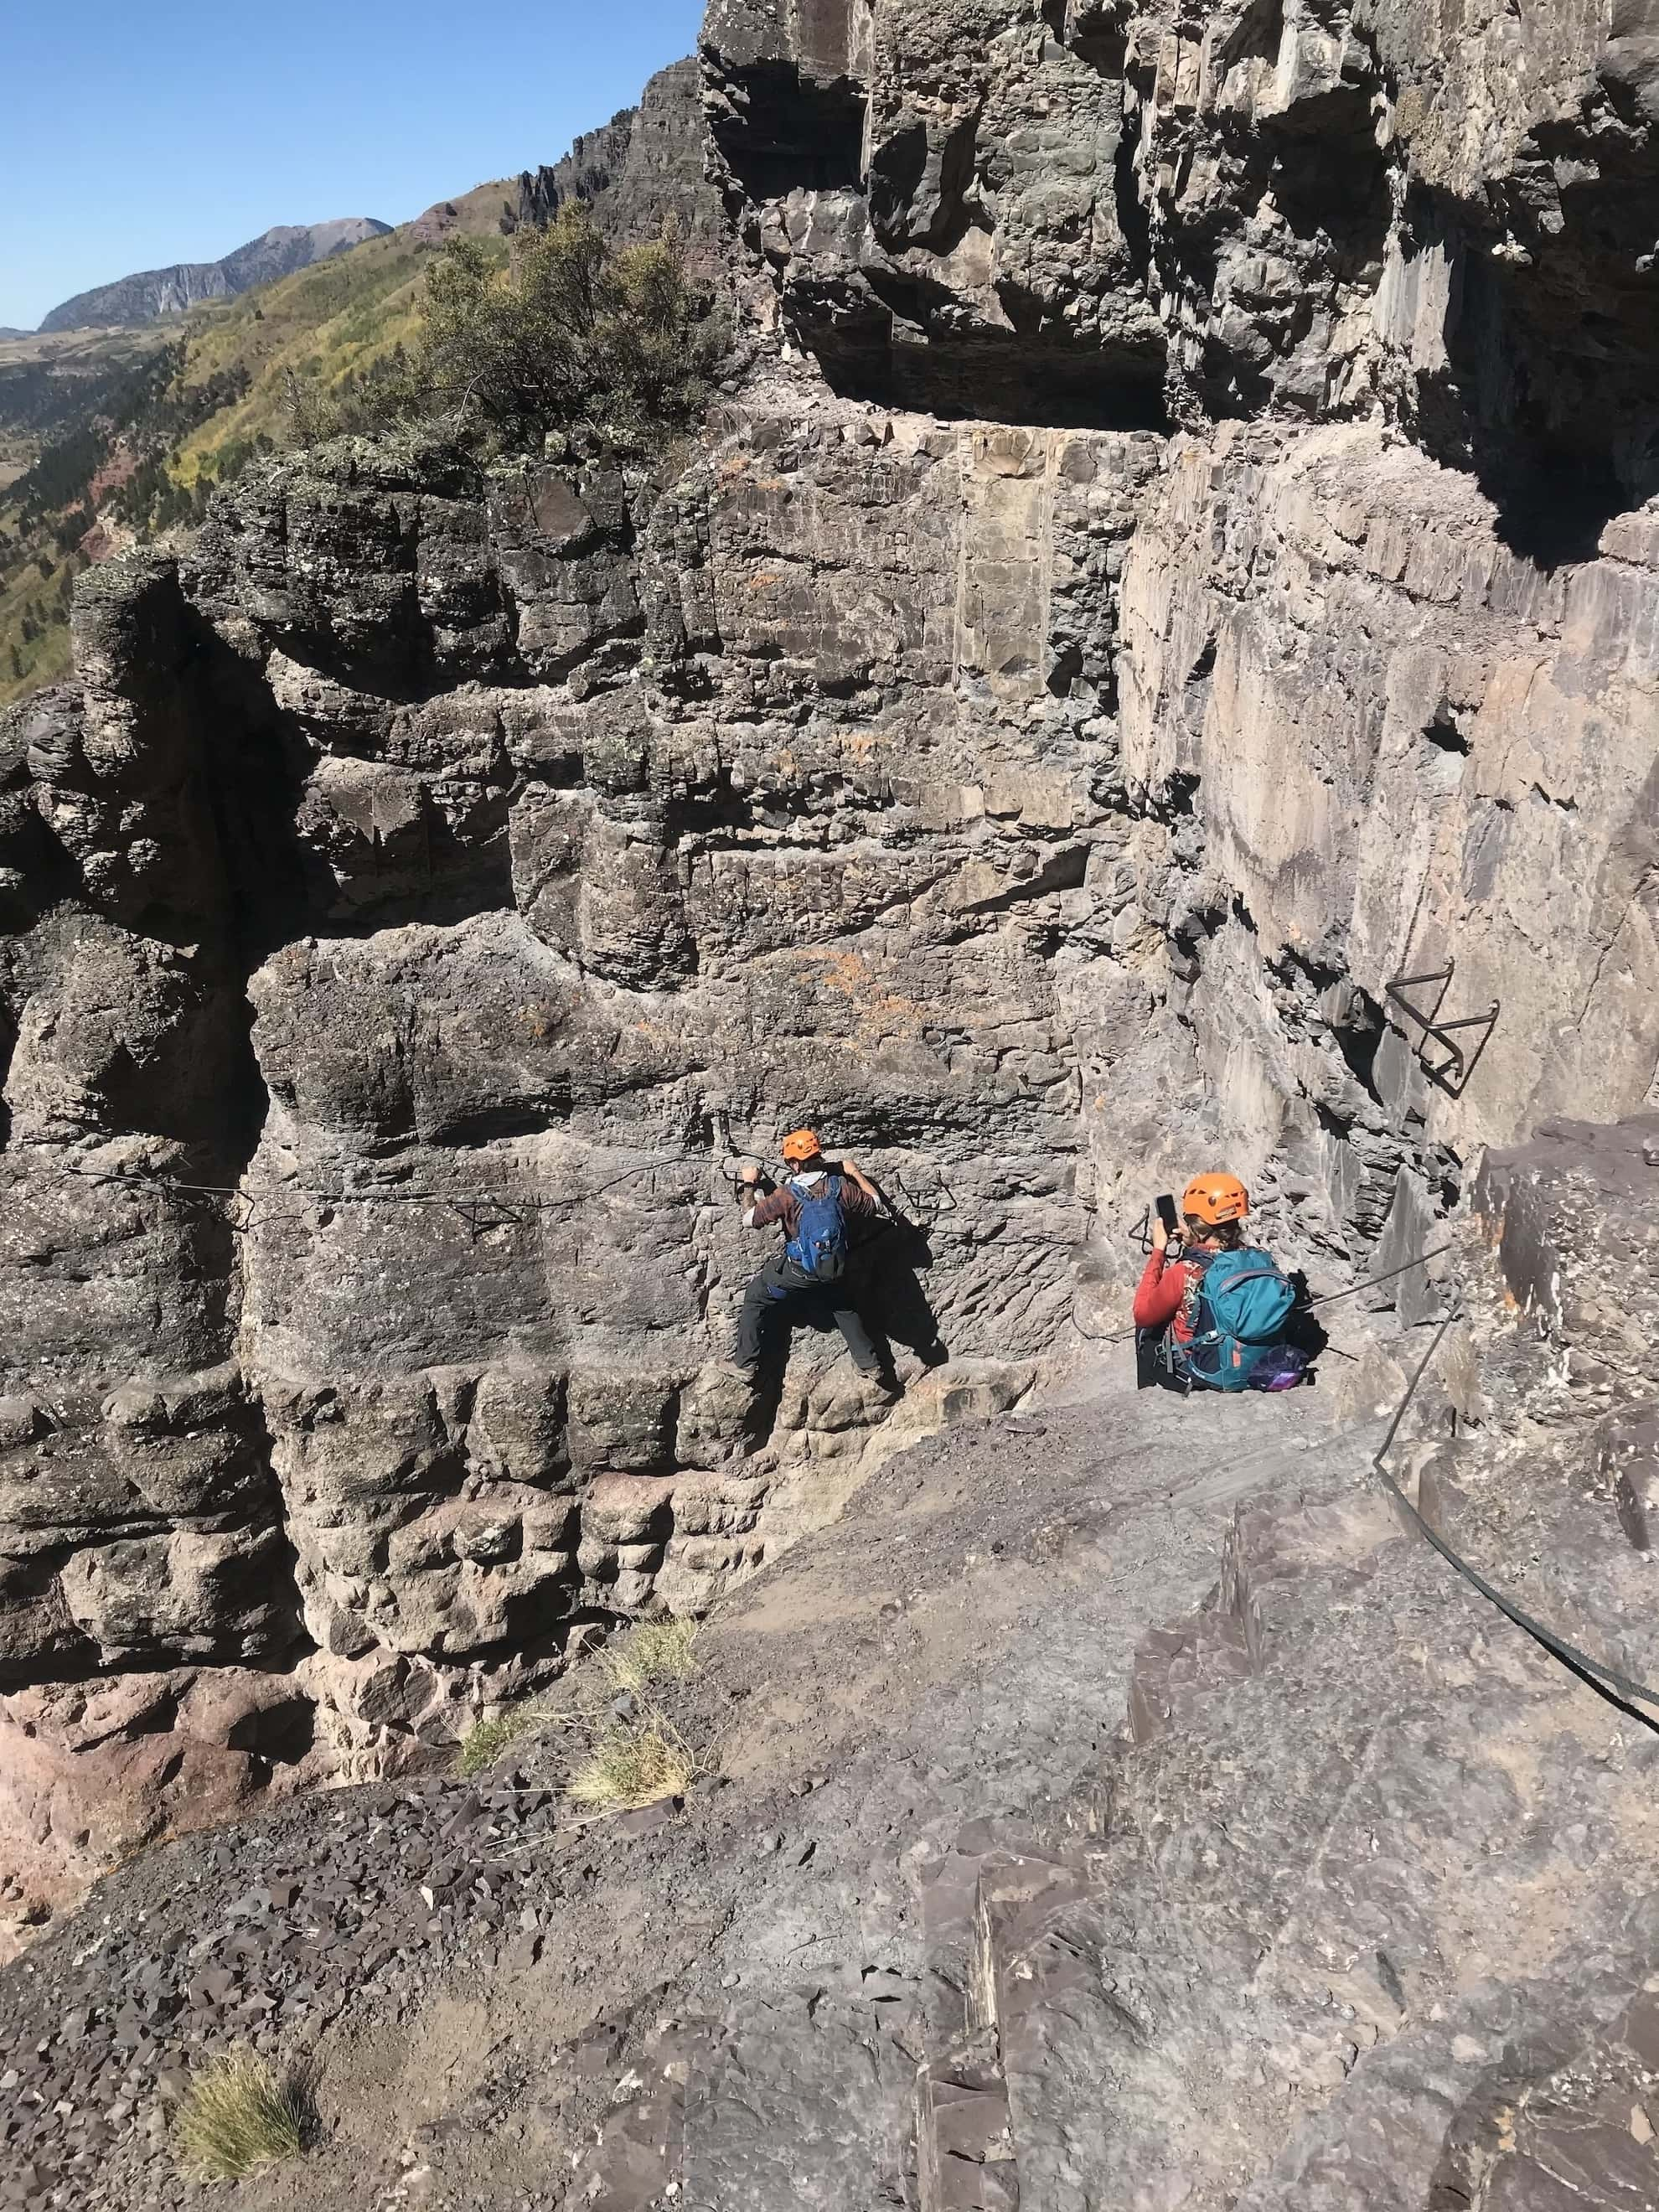 The Telluride Via Ferrata is a fun, thrilling mix of climbing & hiking where you use special equipment to traverse a steep cliff. Plan your adventure with these tips.